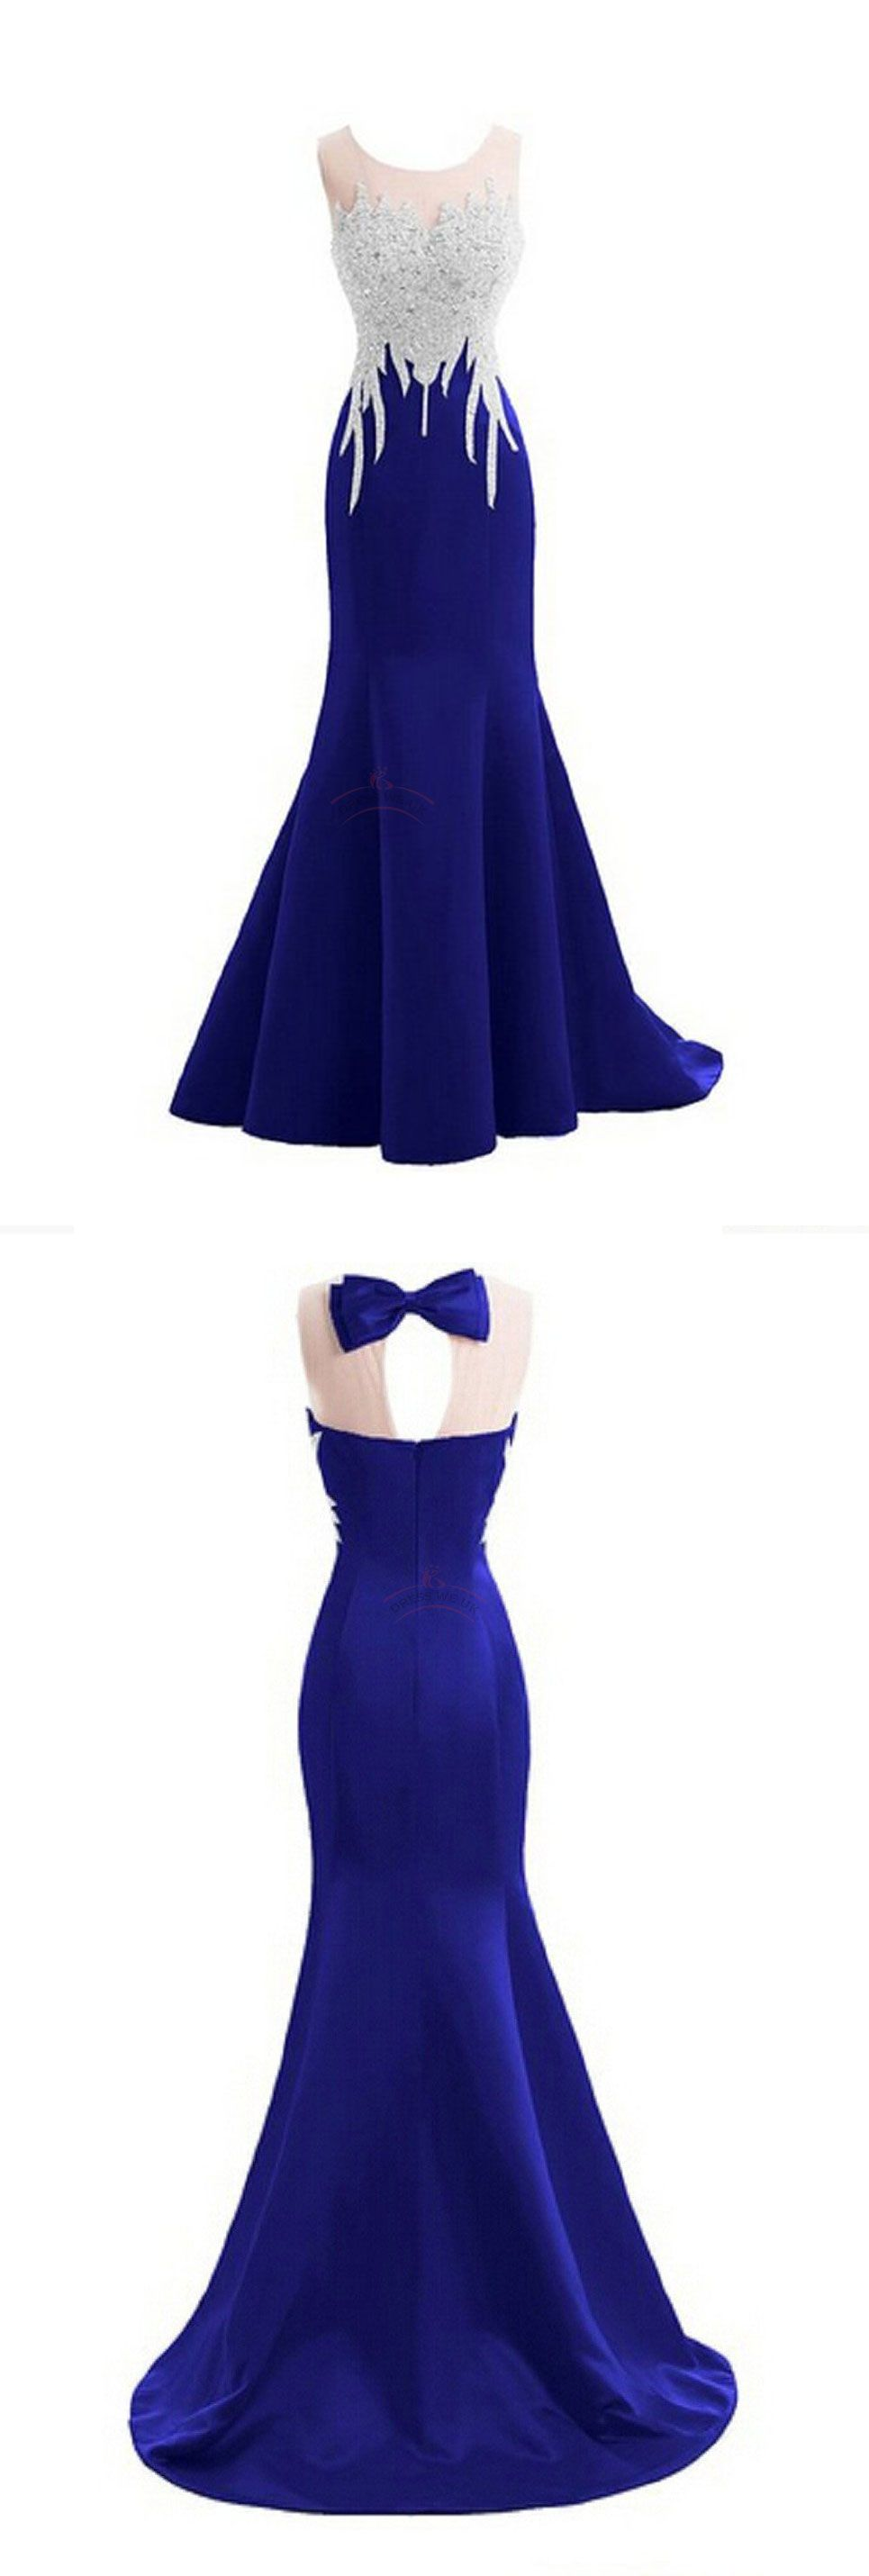 Sparkly crystal prom dressesmermaid prom dressessexy backless prom